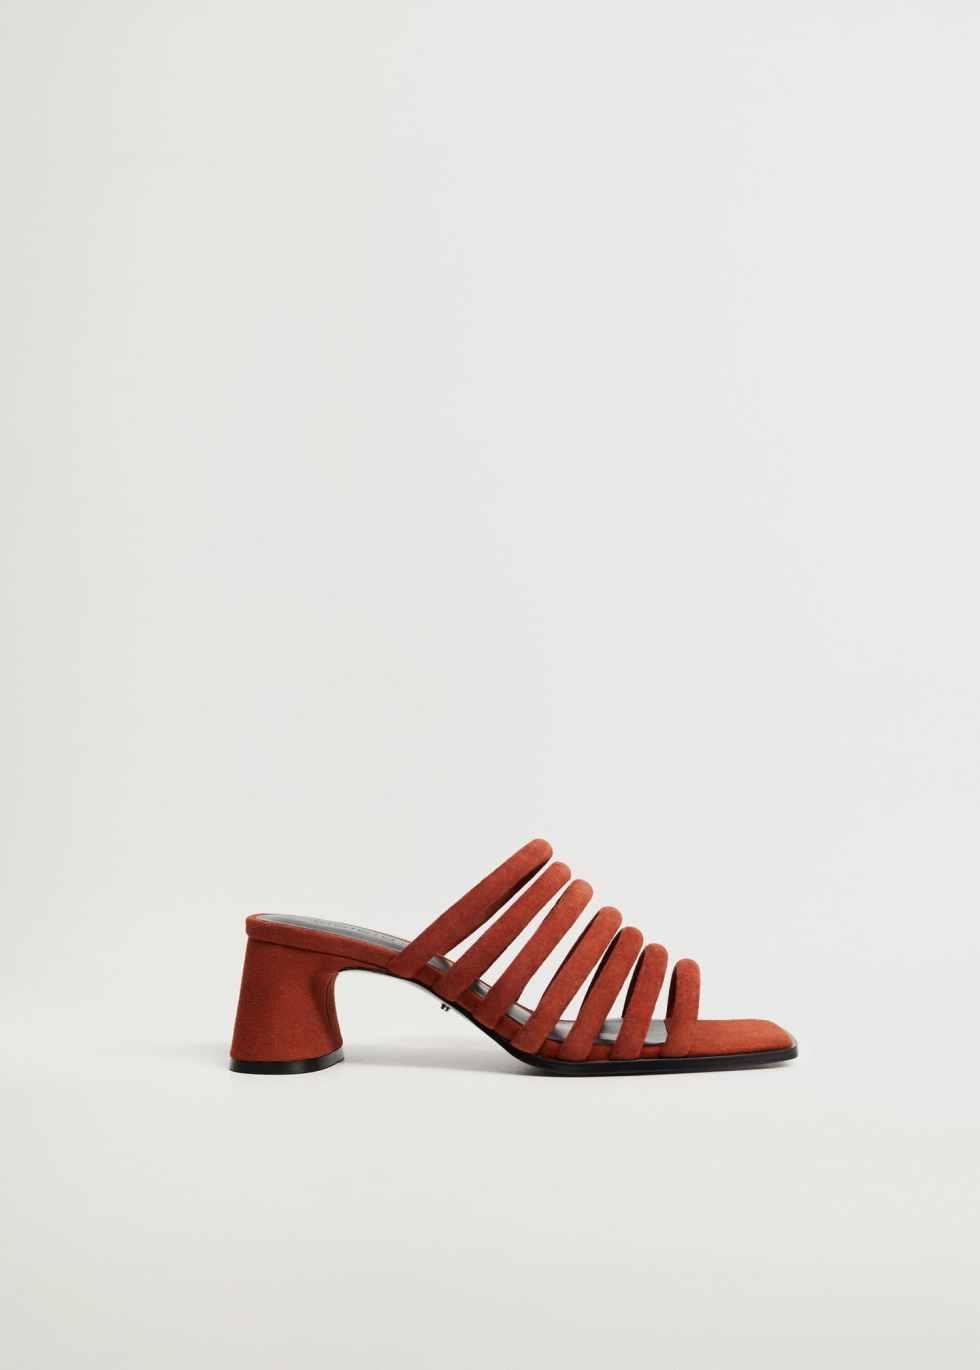 Strappy heeled sandals - Article without model